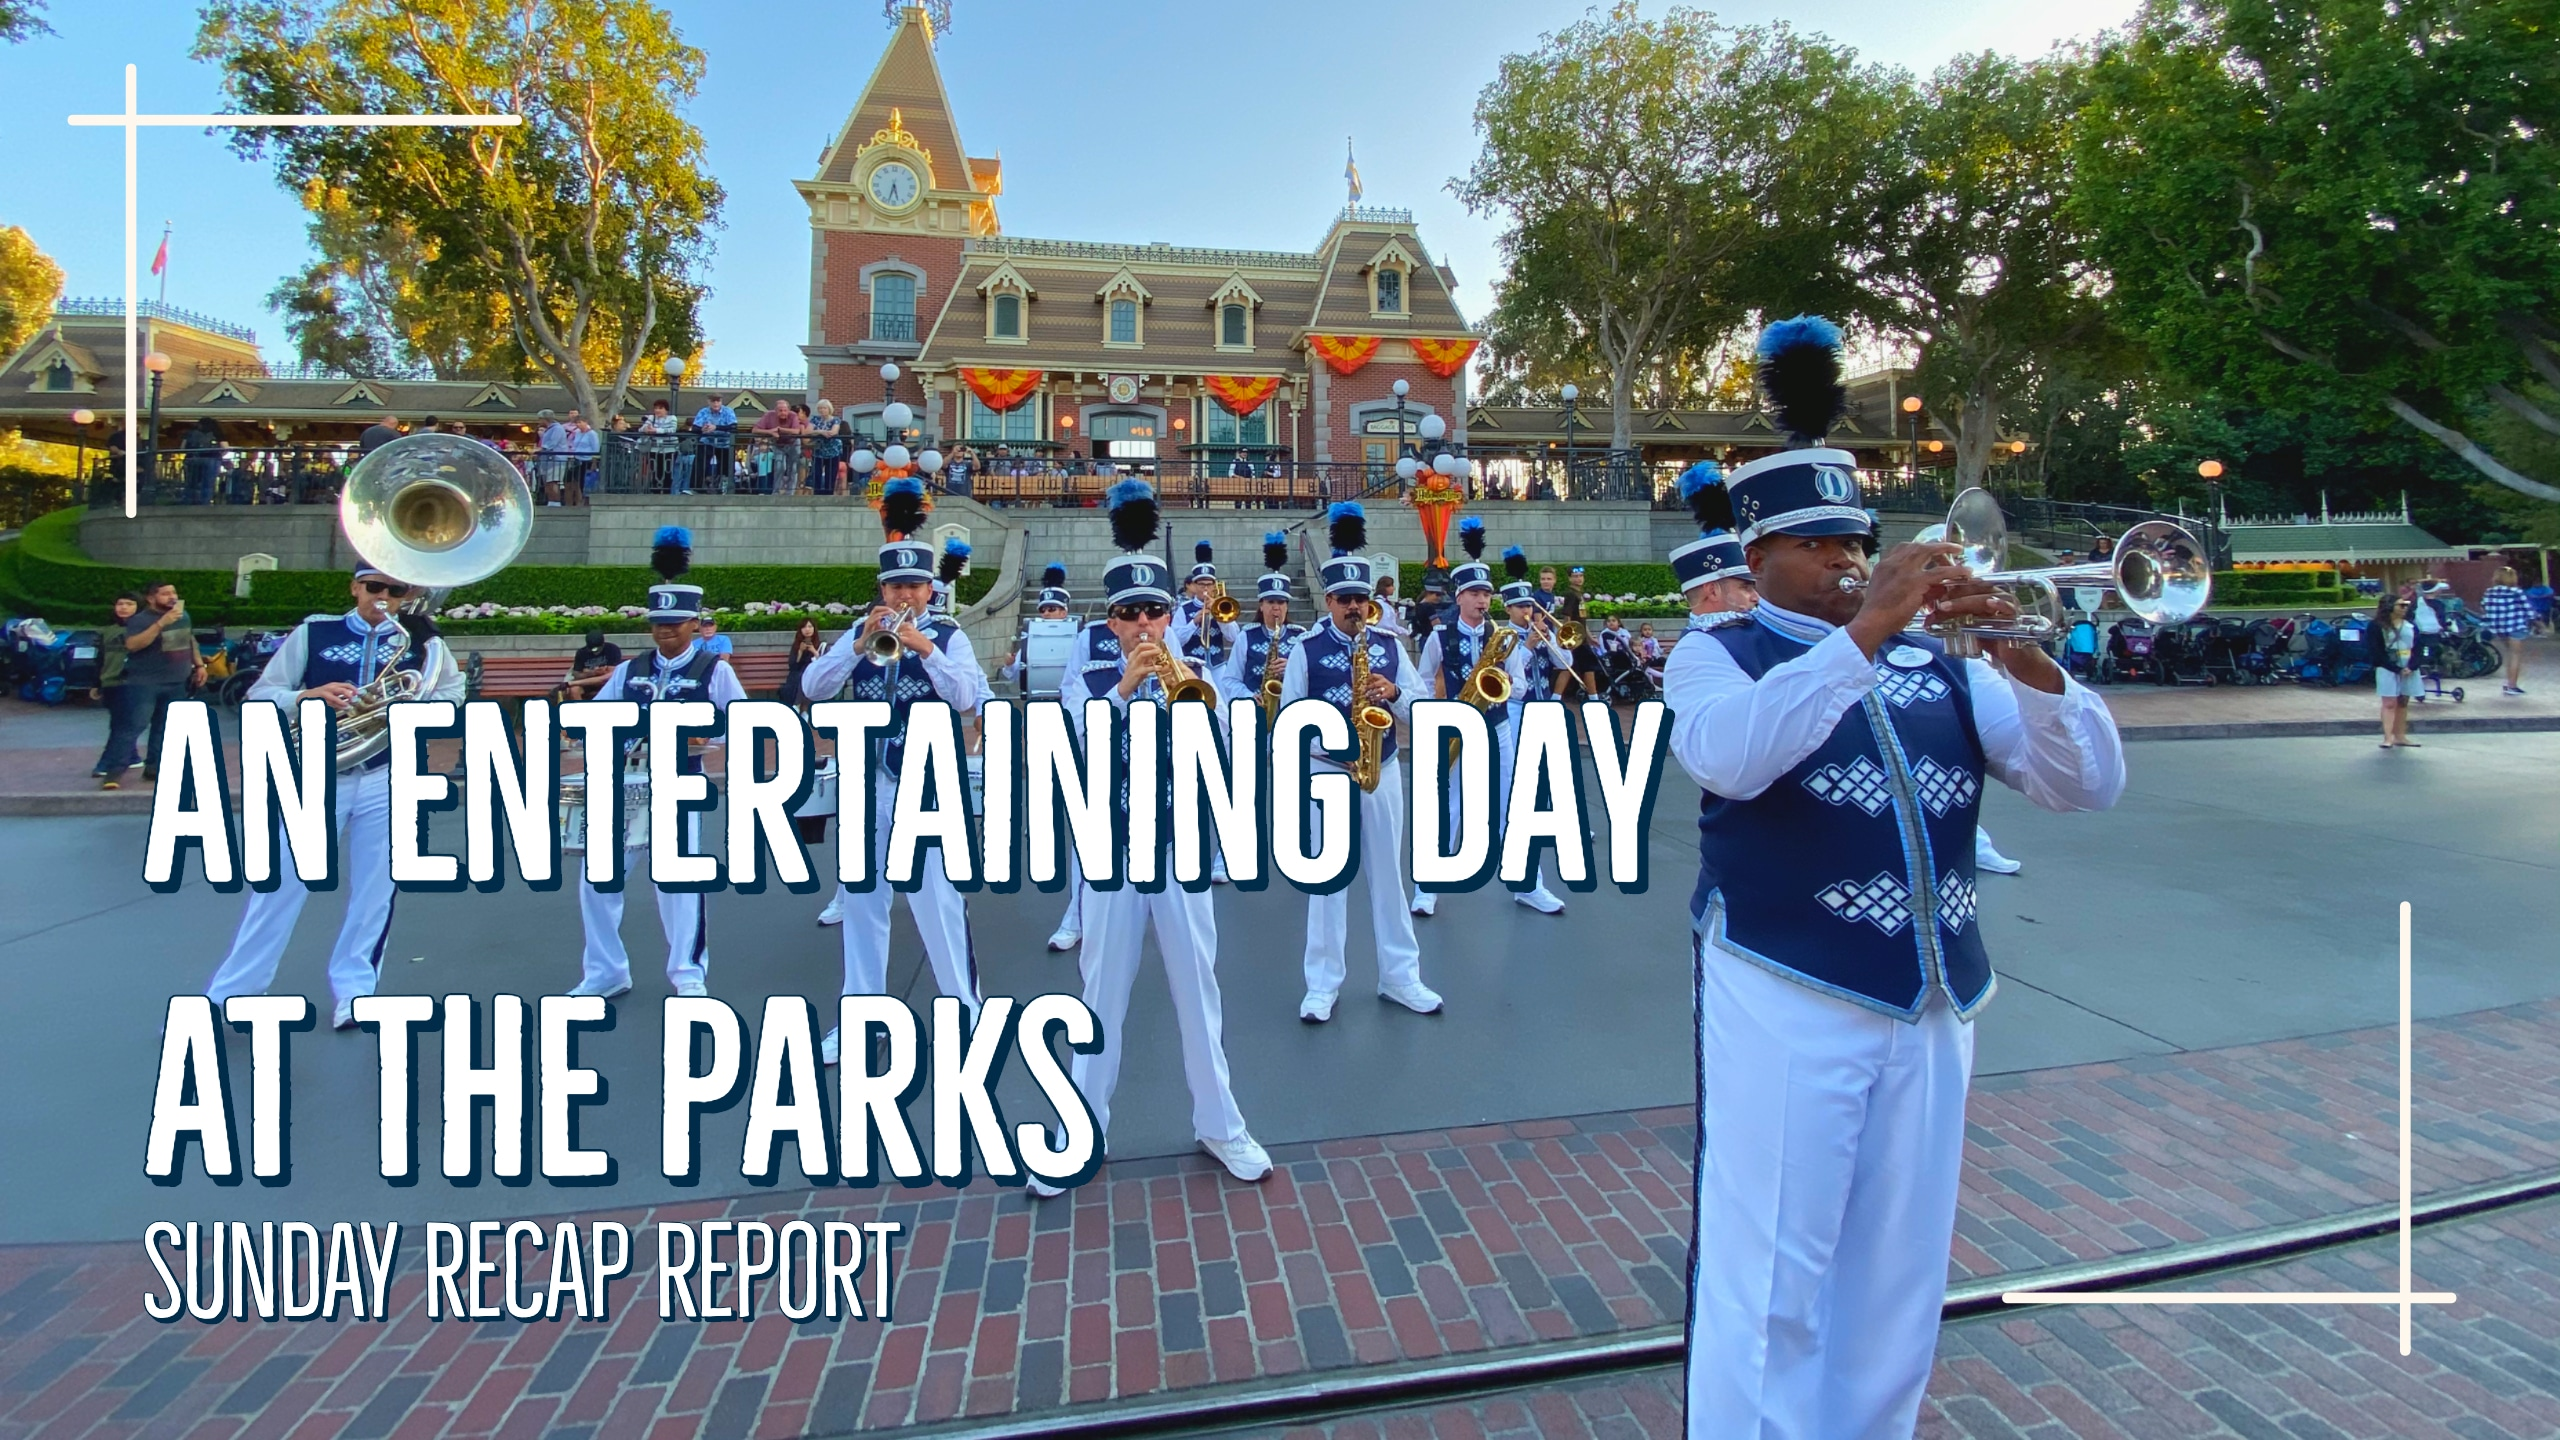 Sunday Recap Report – An Entertaining Day at the Parks